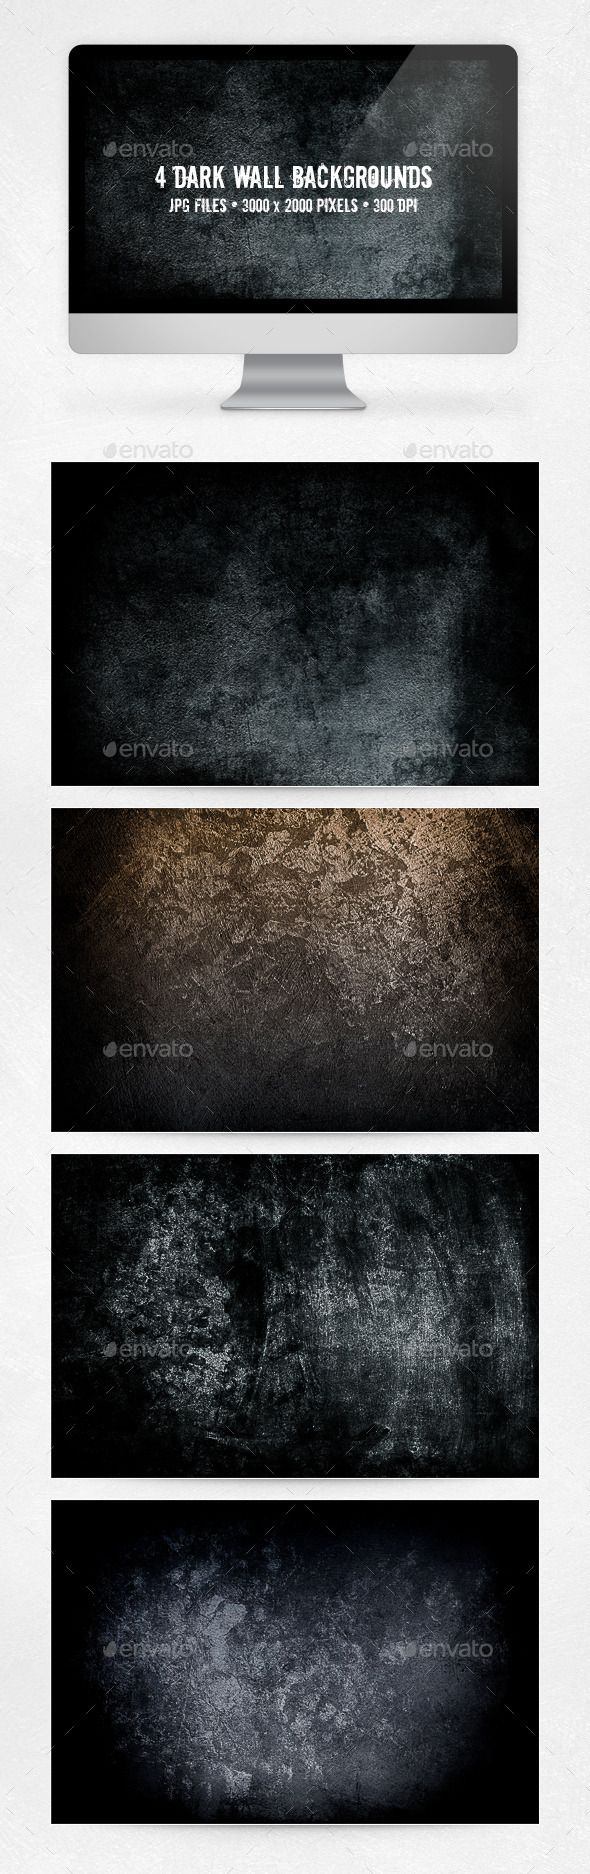 Dark Wall Backgrounds. Download here: http://graphicriver.net/item/dark-wall-backgrounds/10618365?ref=ksioks